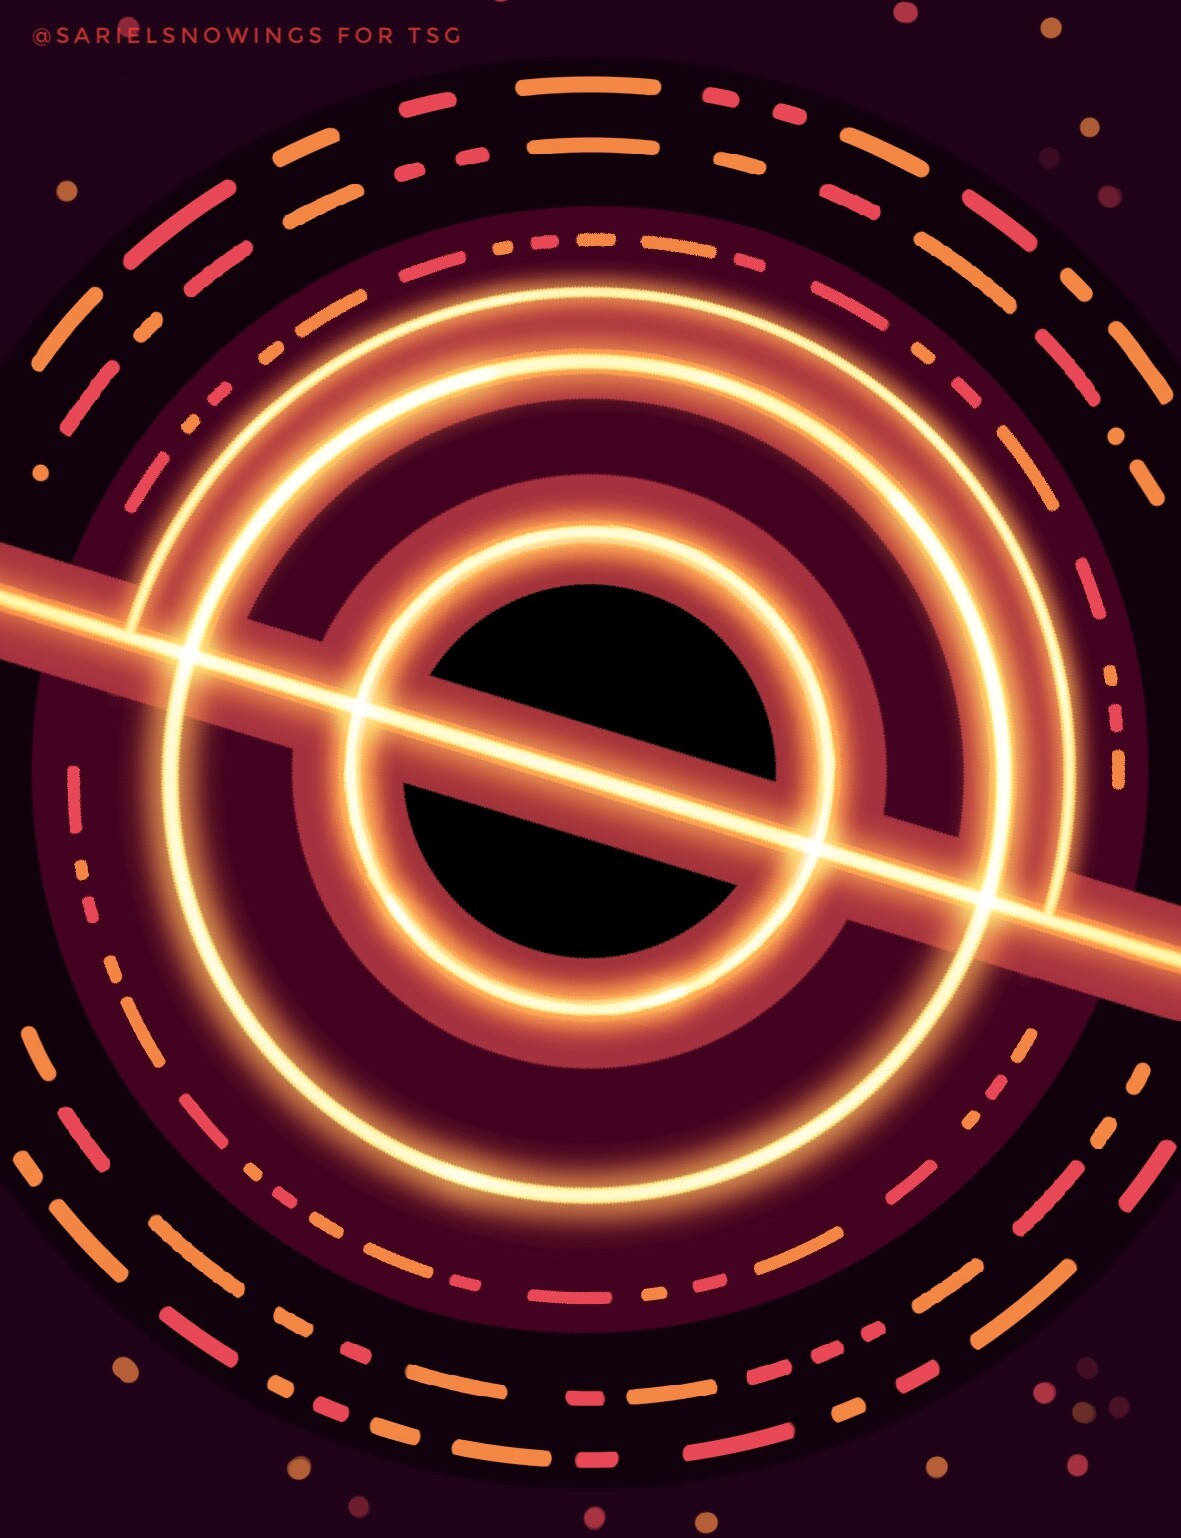 Black hole asset from level 3A